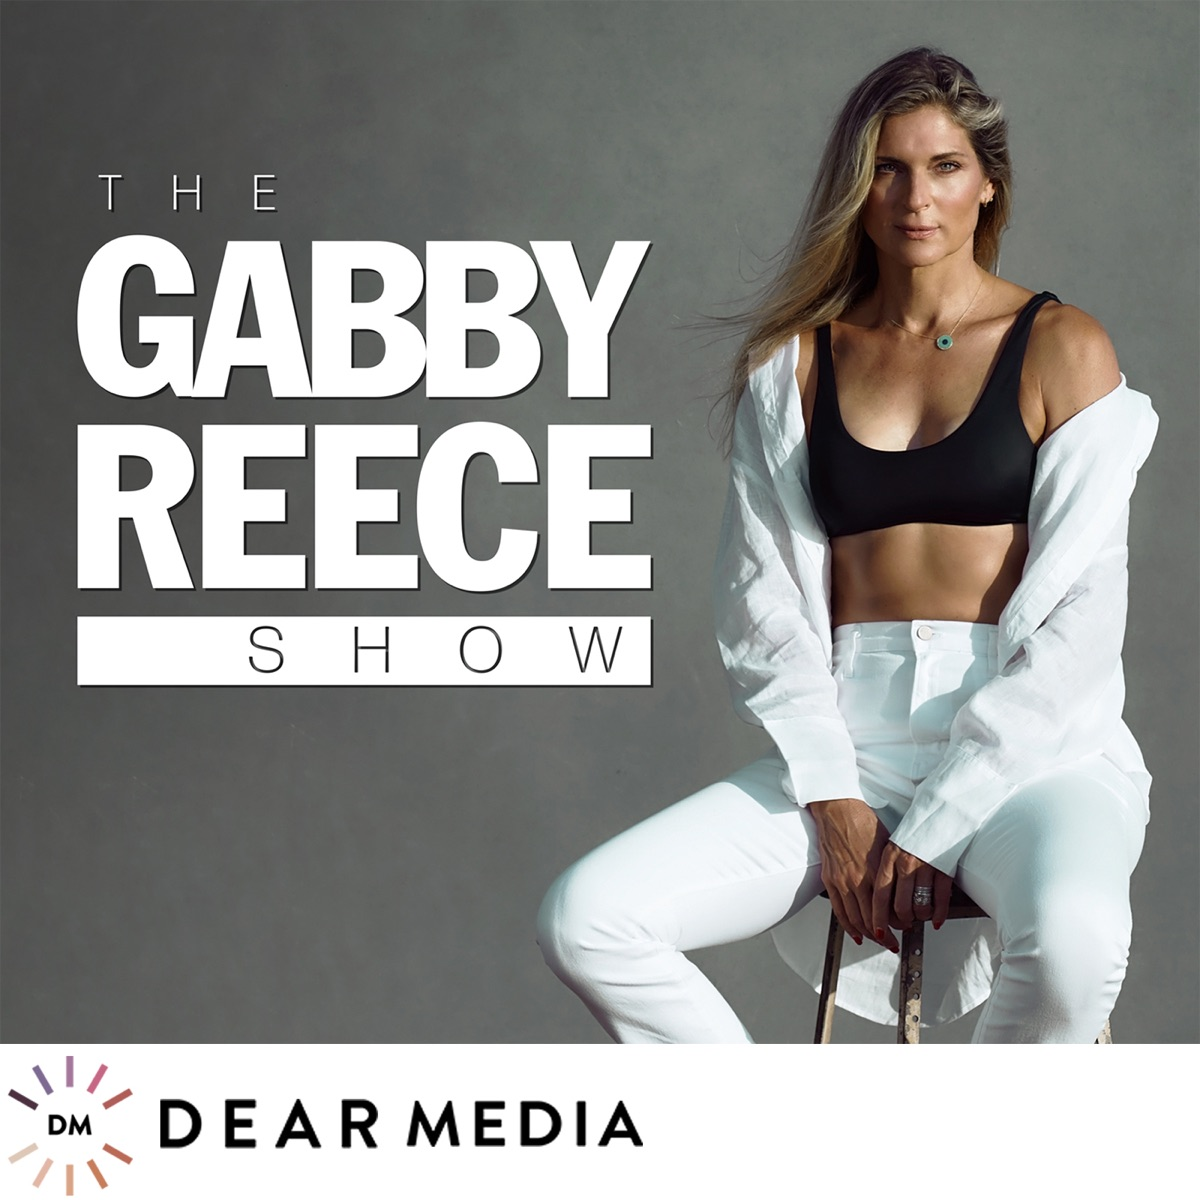 The Gabby Reece Show